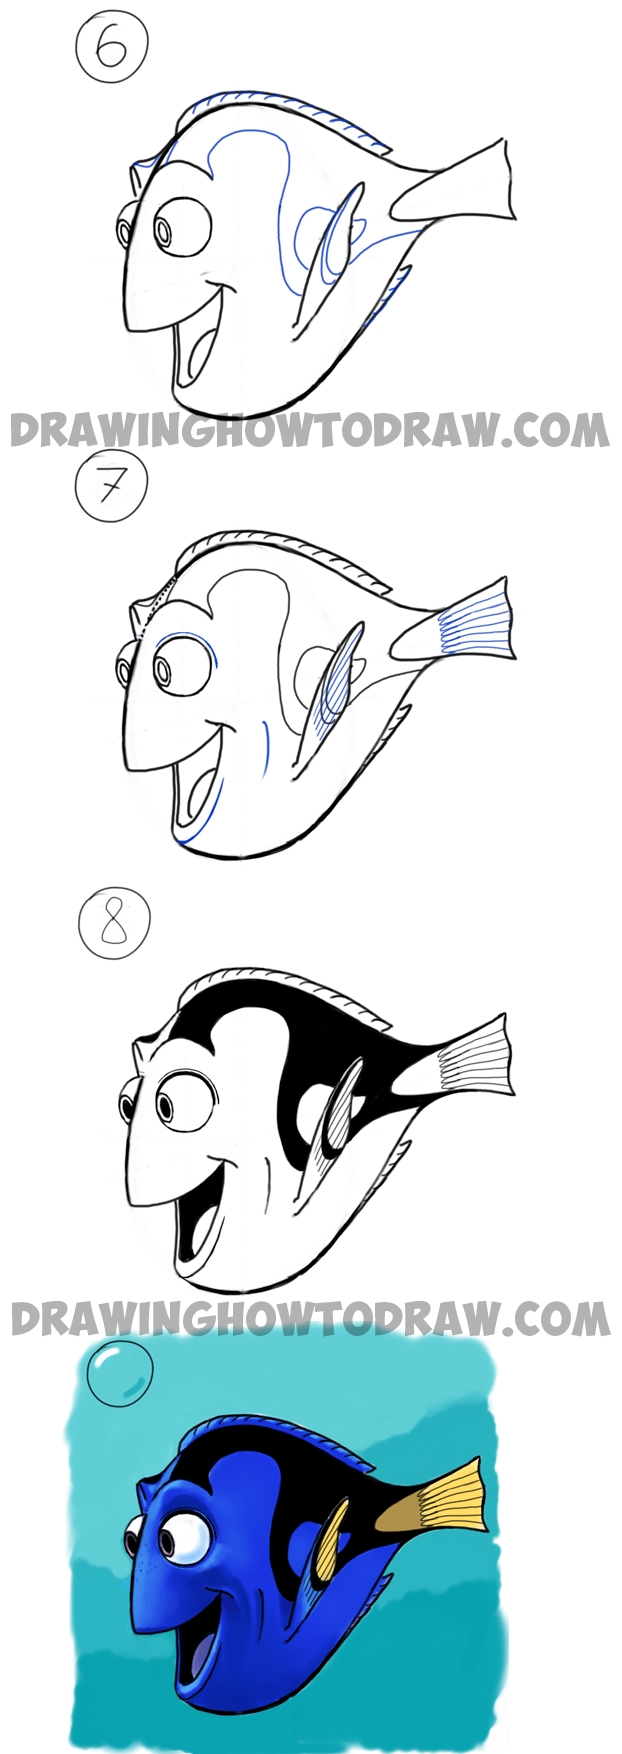 how to draw dory from pixars finding nemo in easy steps drawing